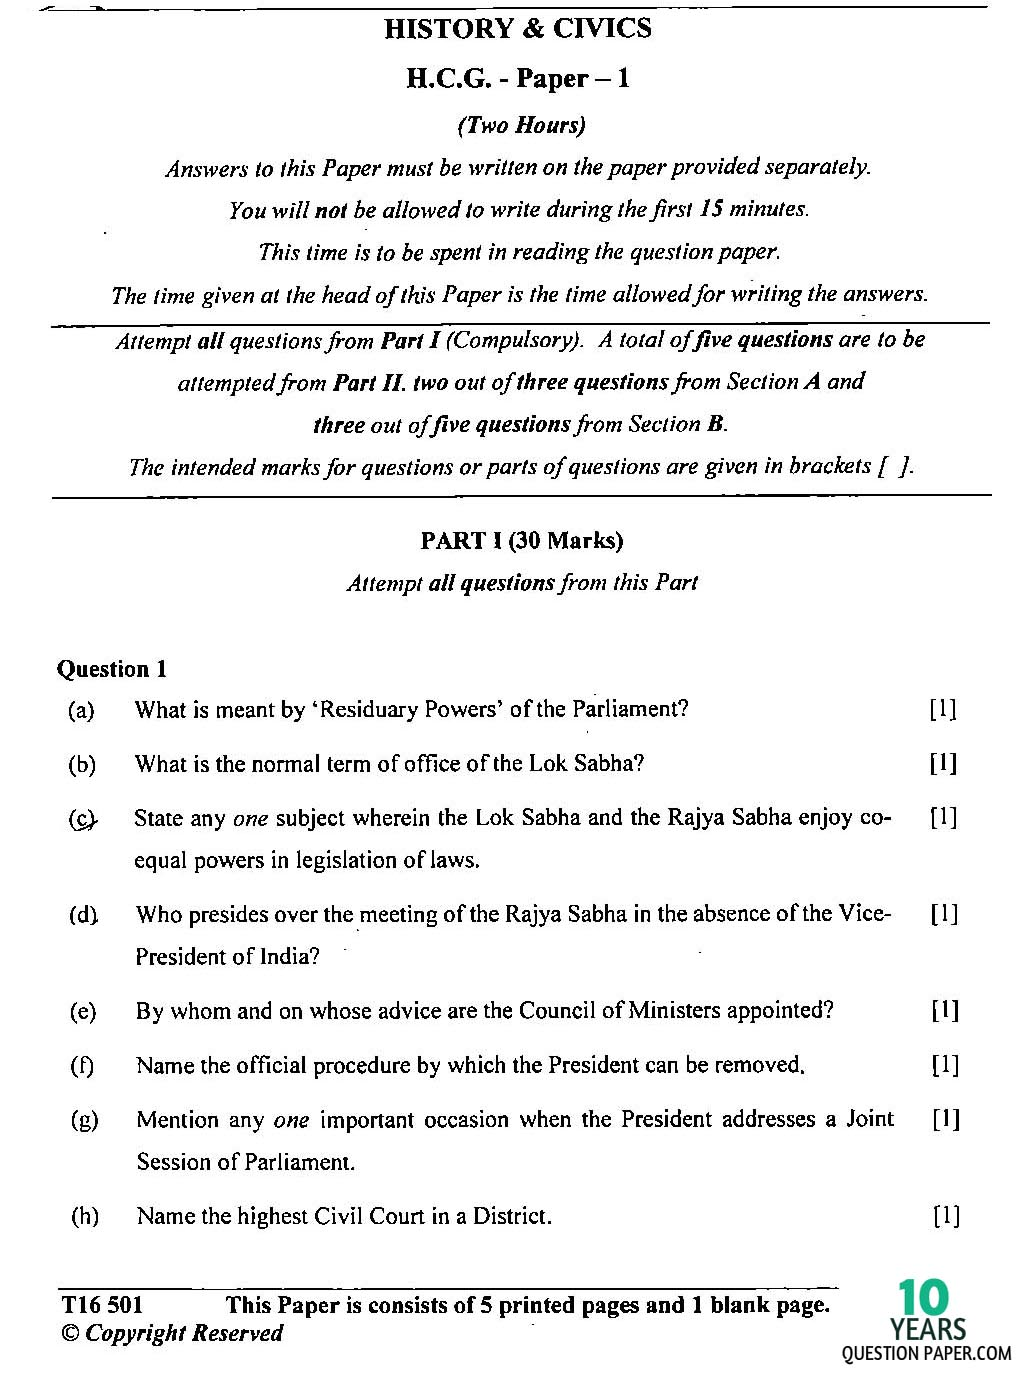 icse 2016 class 10th History & civics H.C.G Paper 1 question paper